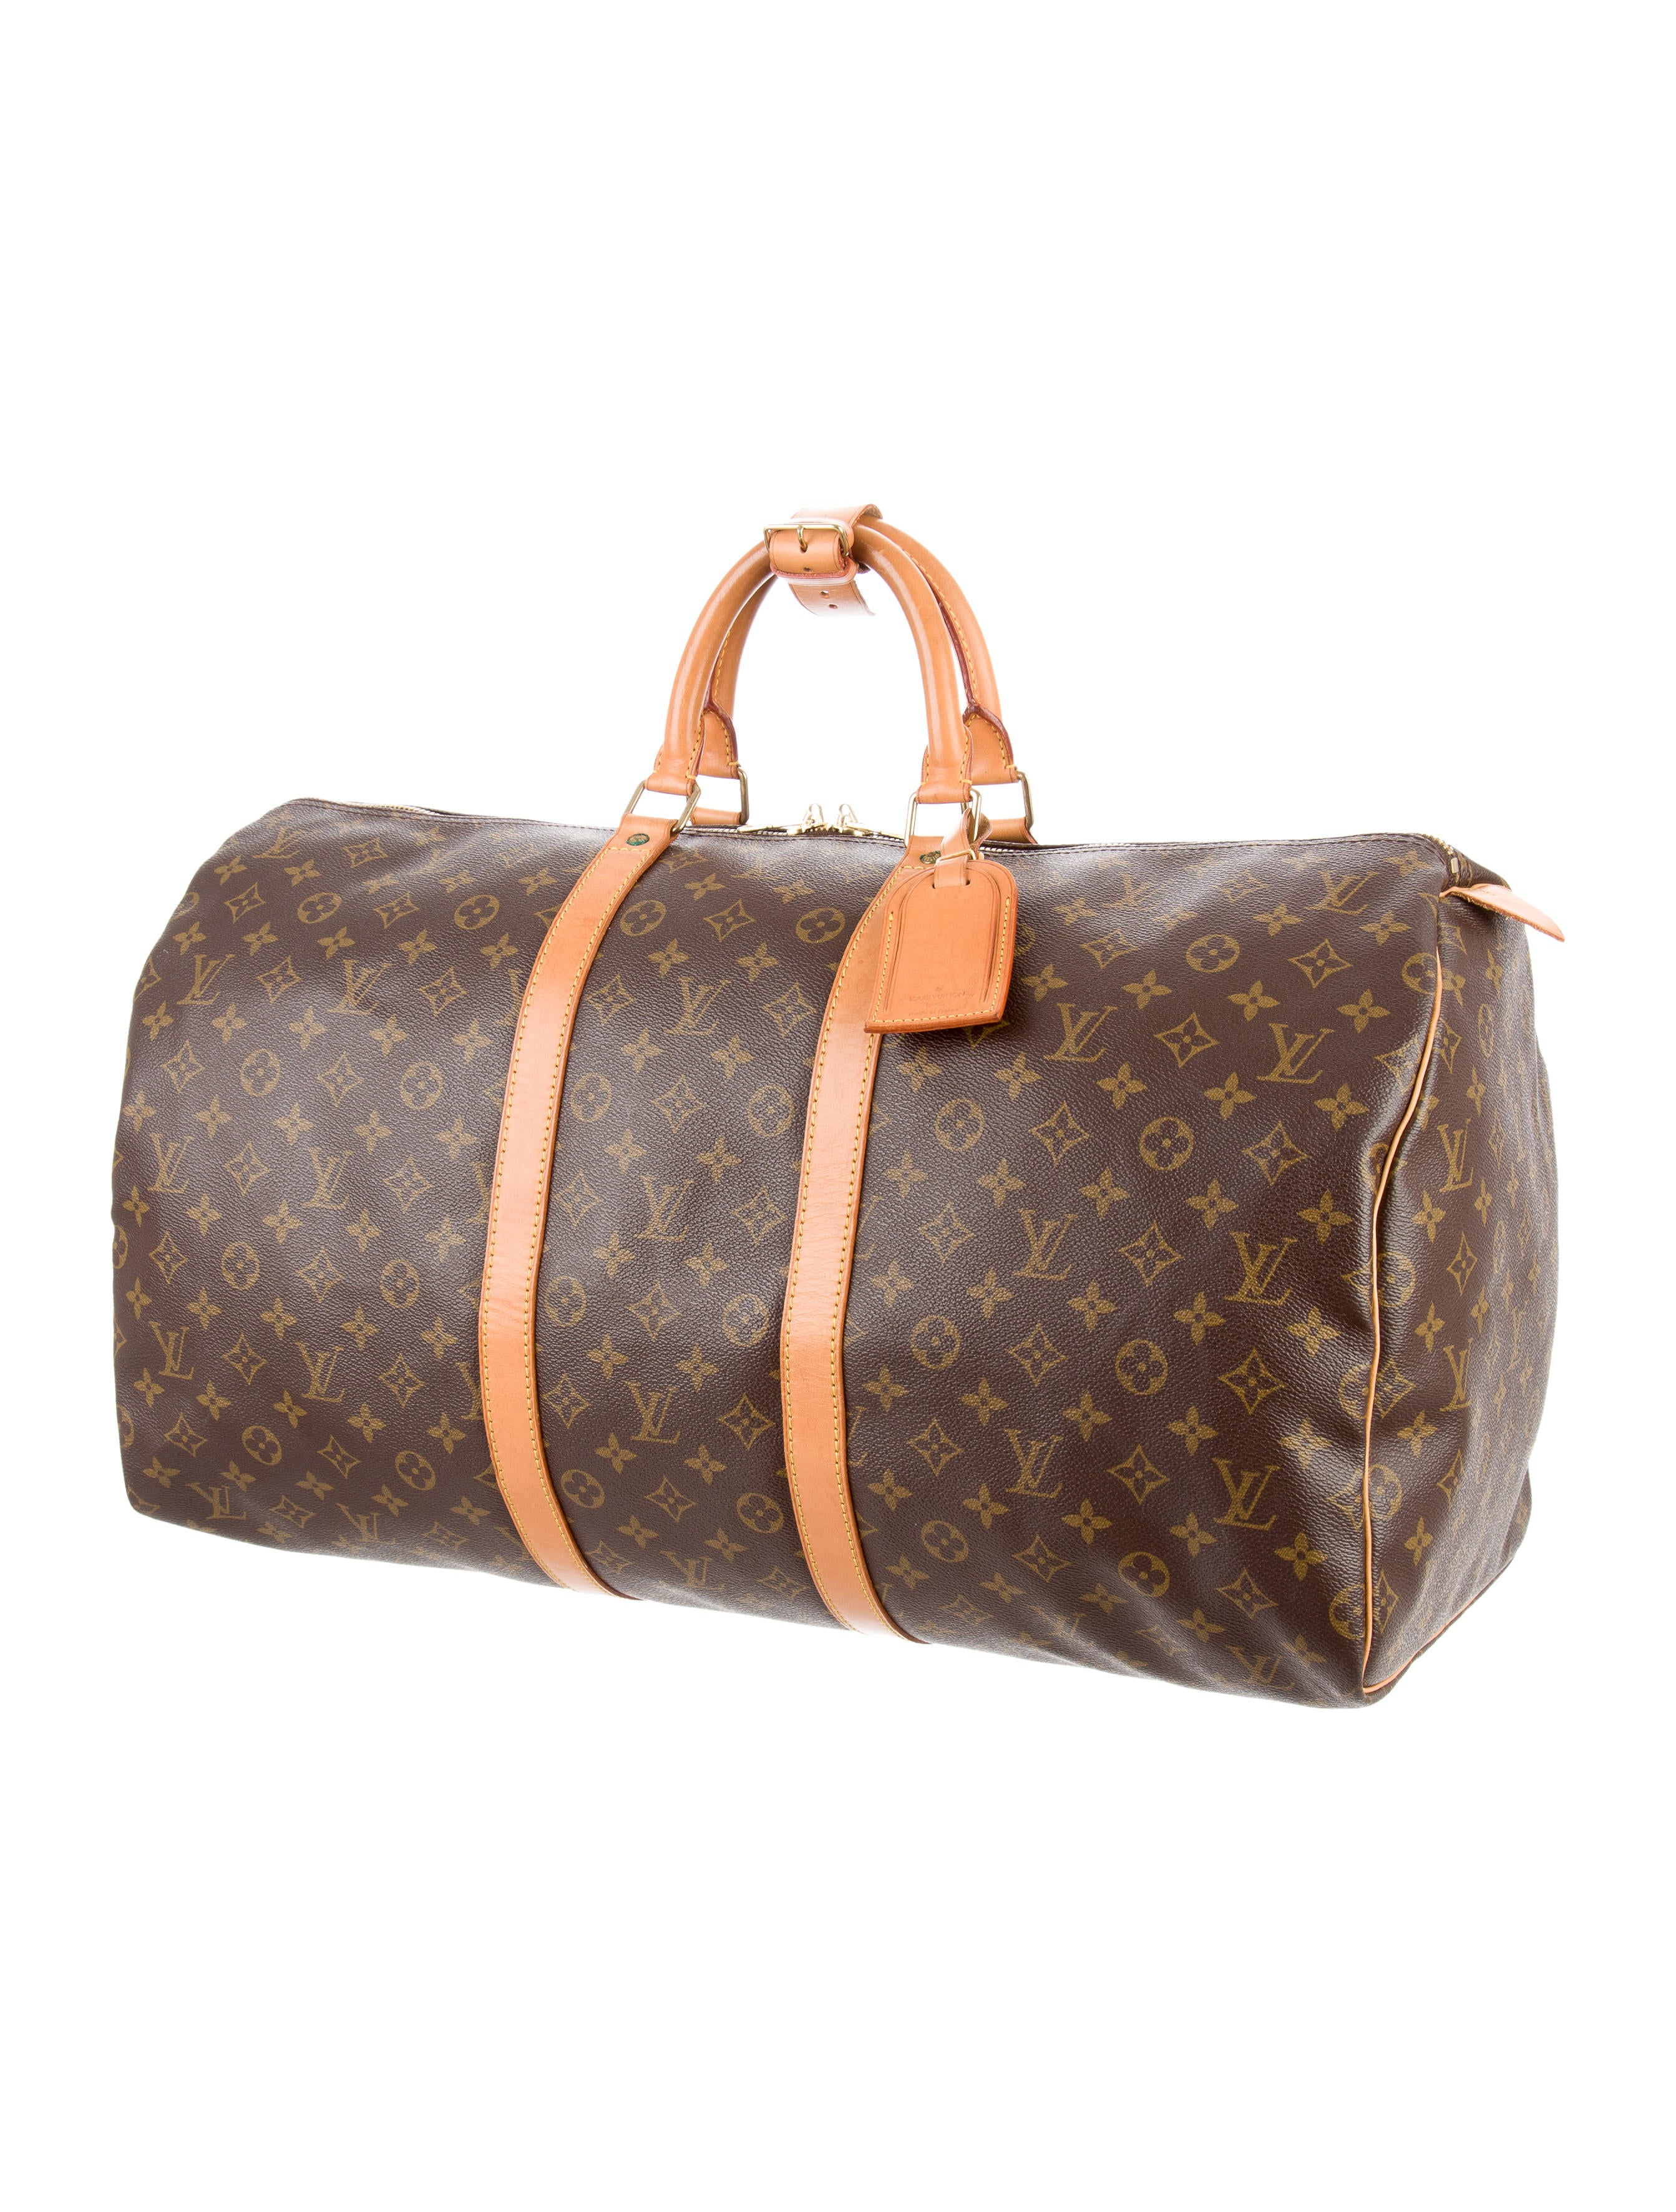 louis vuitton monogram keepall 55 handbags lou122020 the realreal. Black Bedroom Furniture Sets. Home Design Ideas